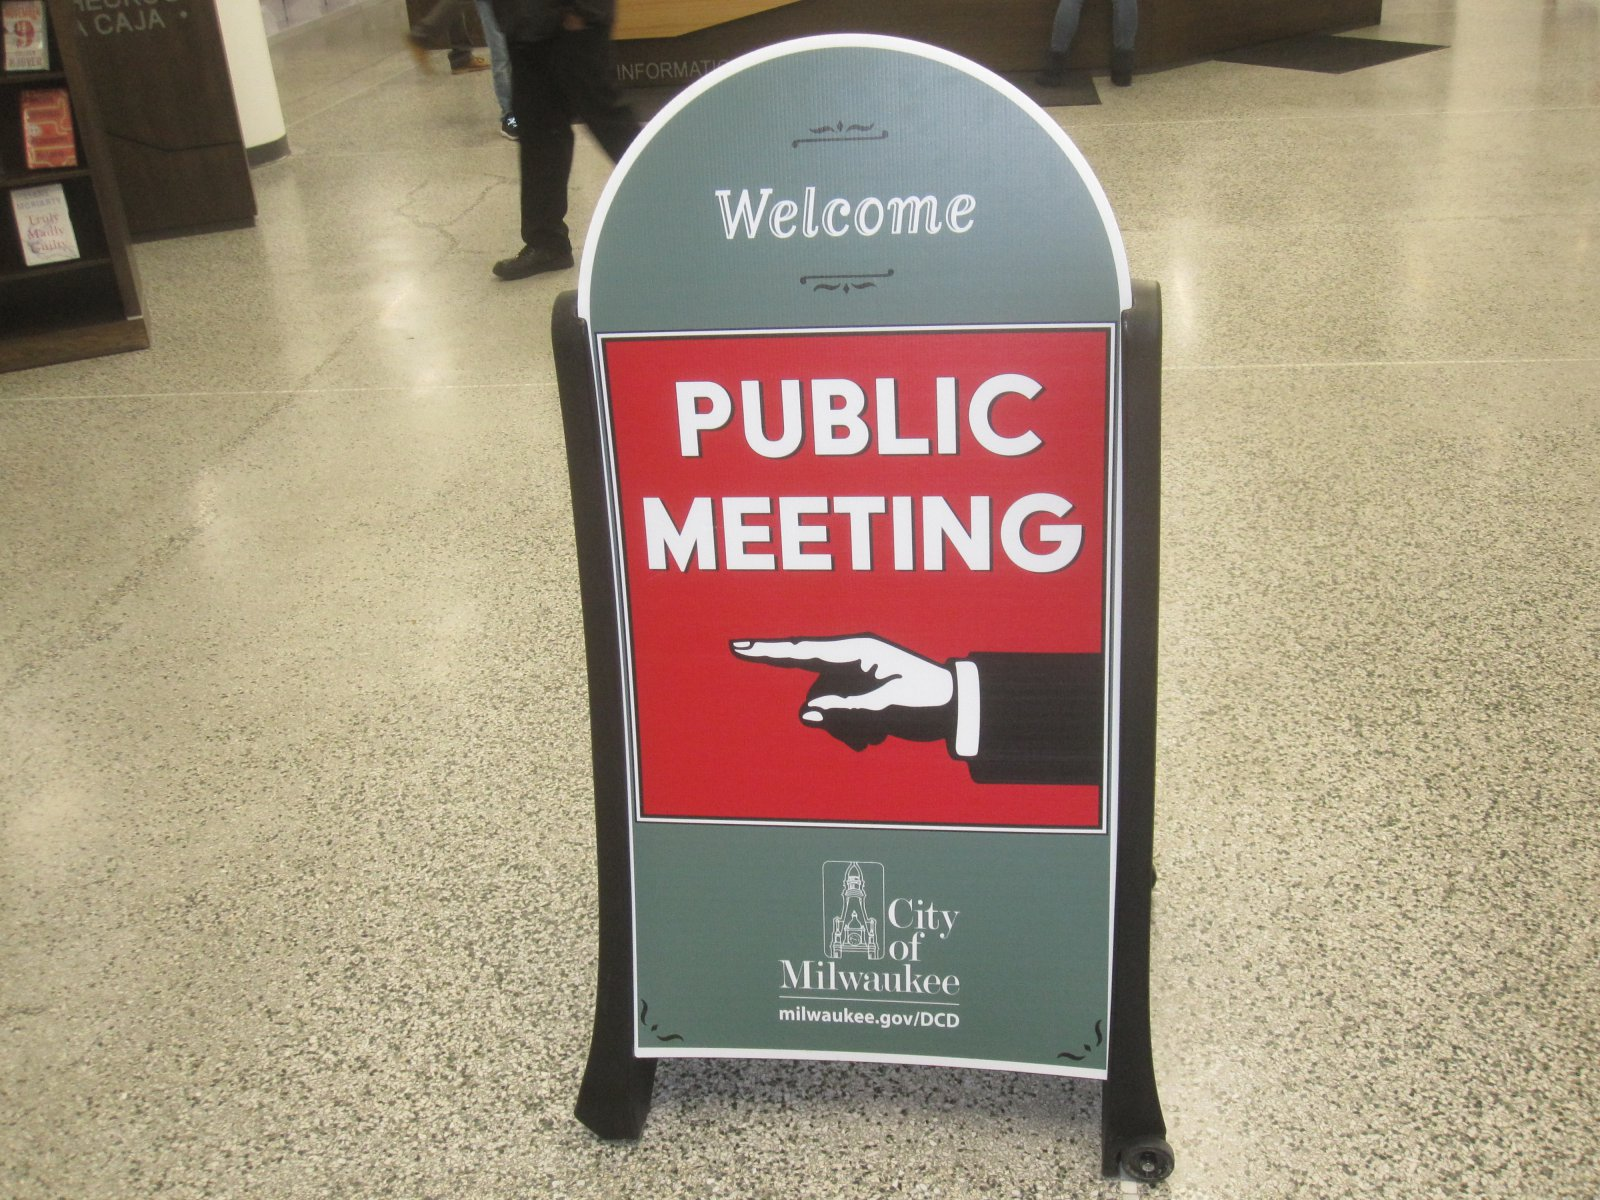 Public Meeting. Photo by Michael Horne.